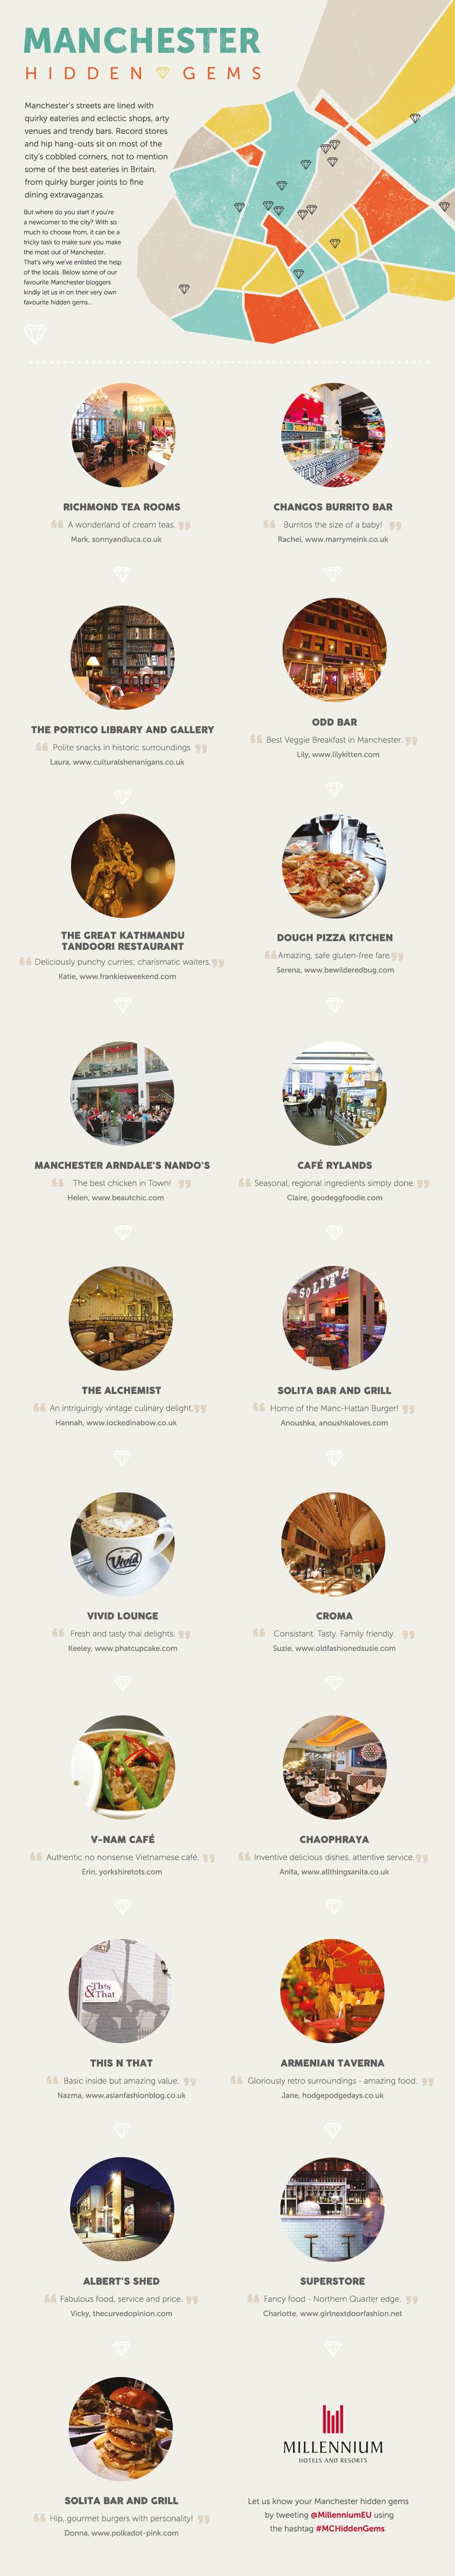 Things to do in Manchester ALSO MASSIVE CREDS TO MY COUSINS FIANCEE BECAUSE HIS AWSOME BURRITO PLACE IS ON THERE AND YES ROGER, I AM MEGA PROUD!!!!!!!!!